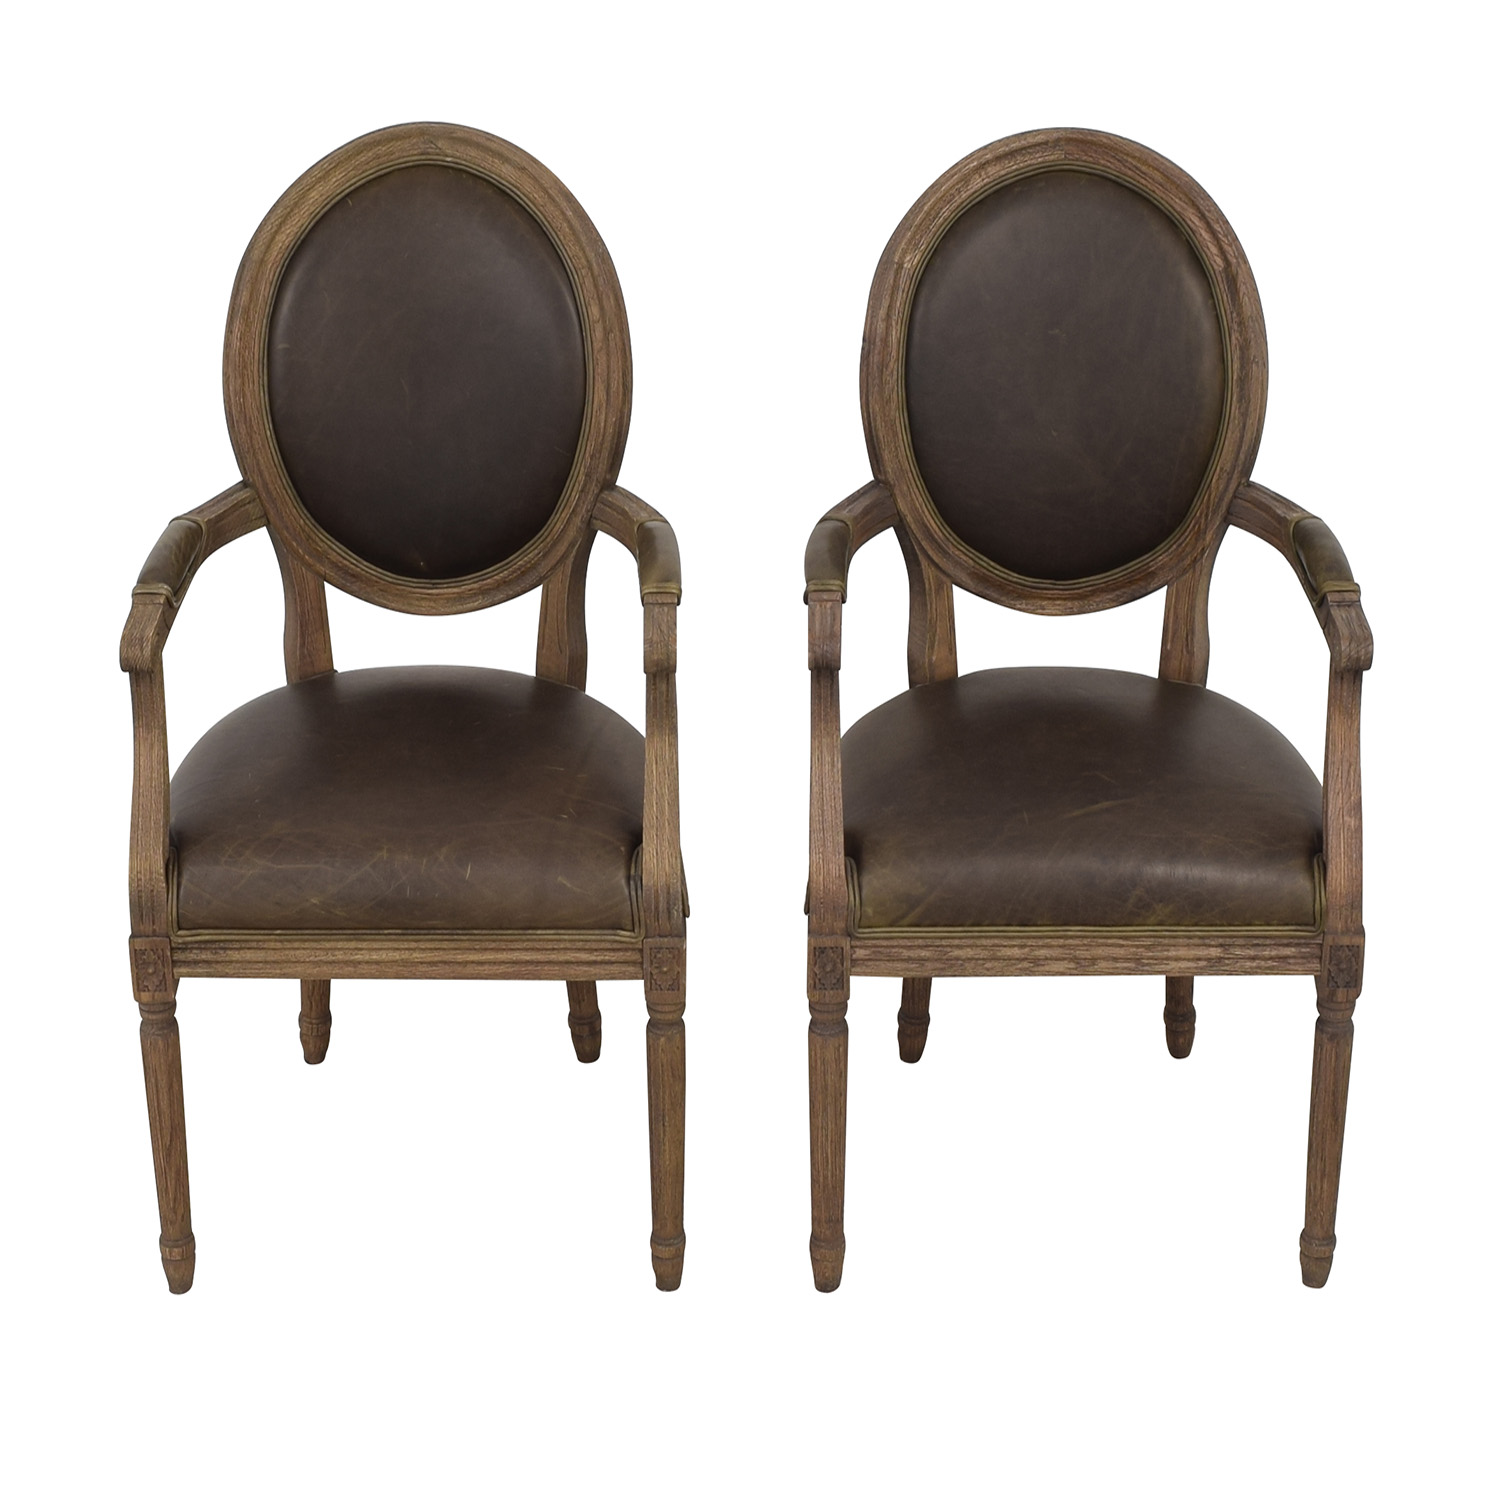 buy Restoration Hardware Restoration Hardware Vintage French Round Leather Armchairs online